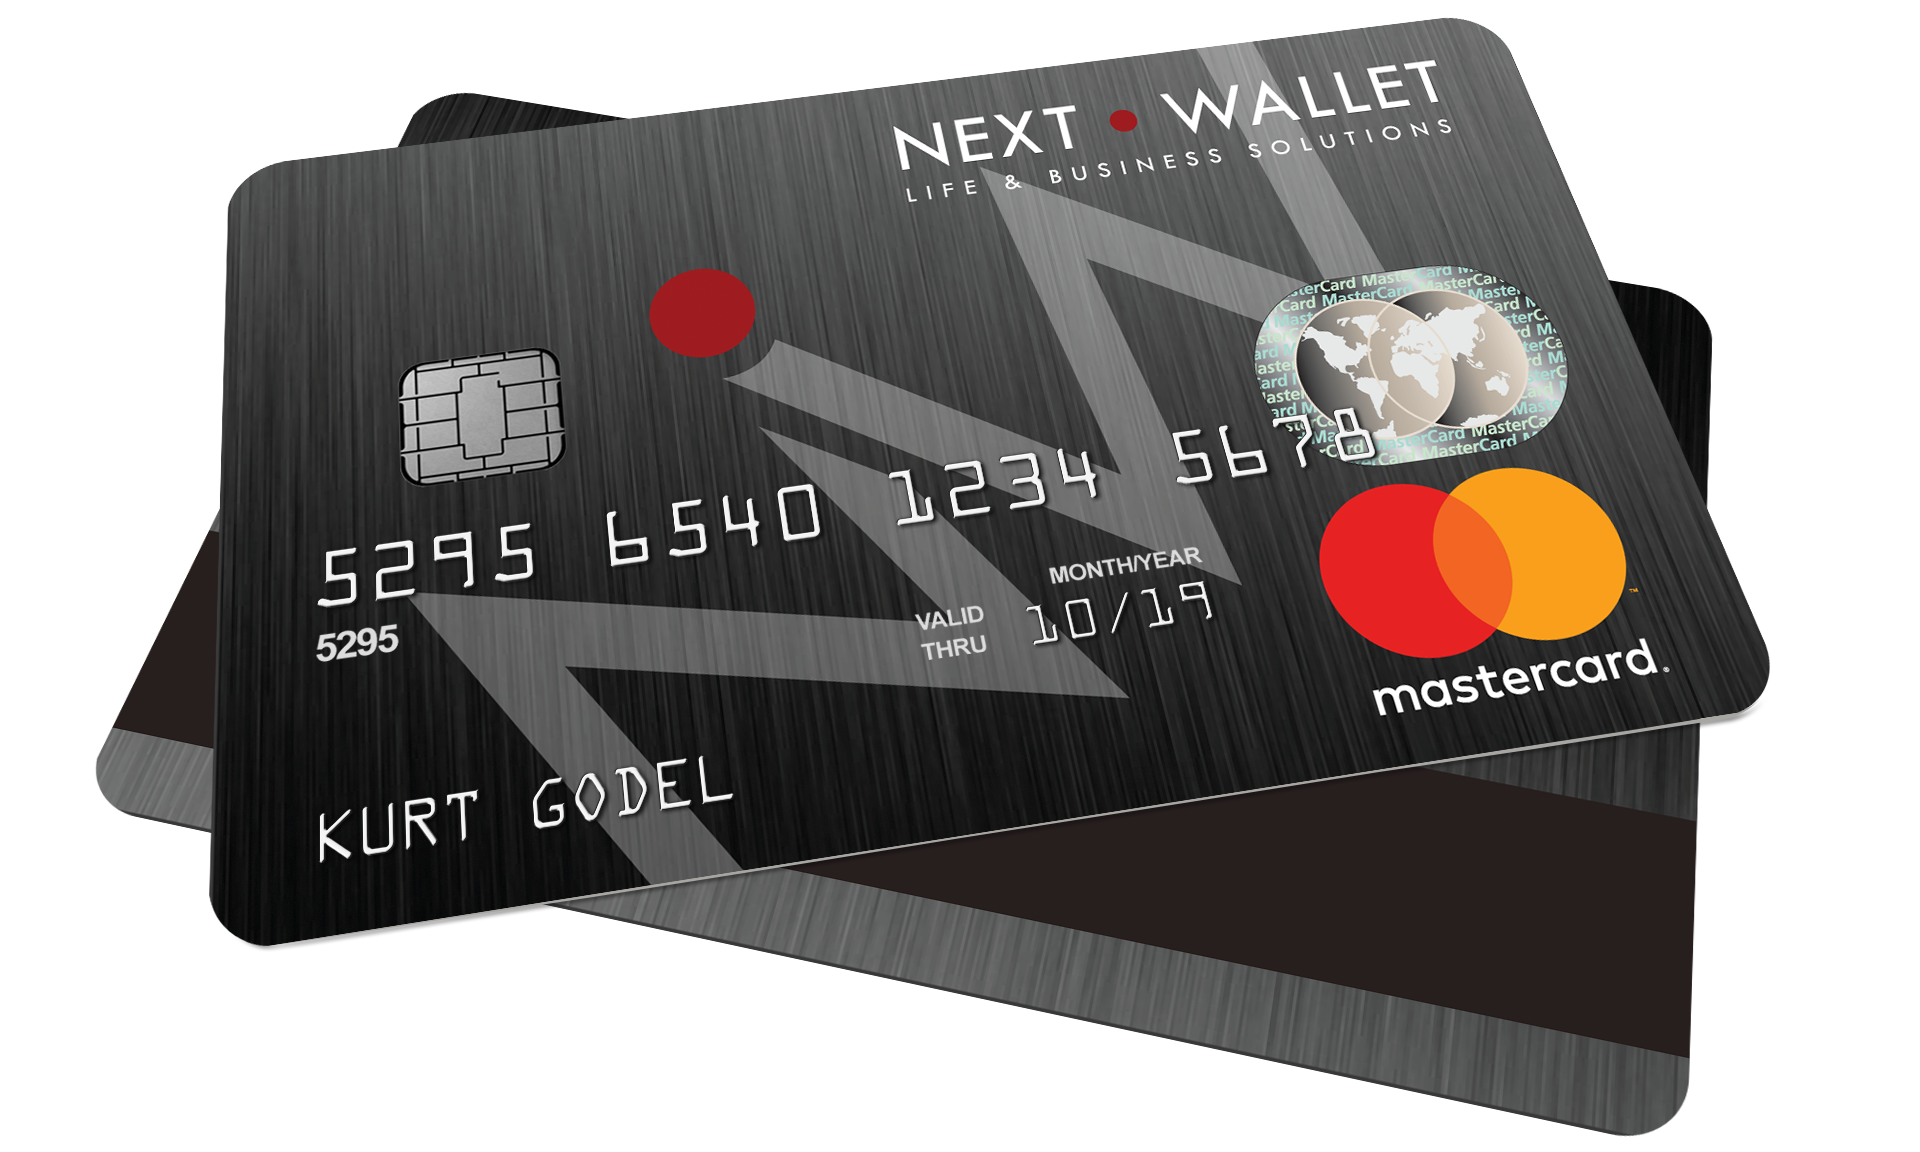 Next Wallet Card